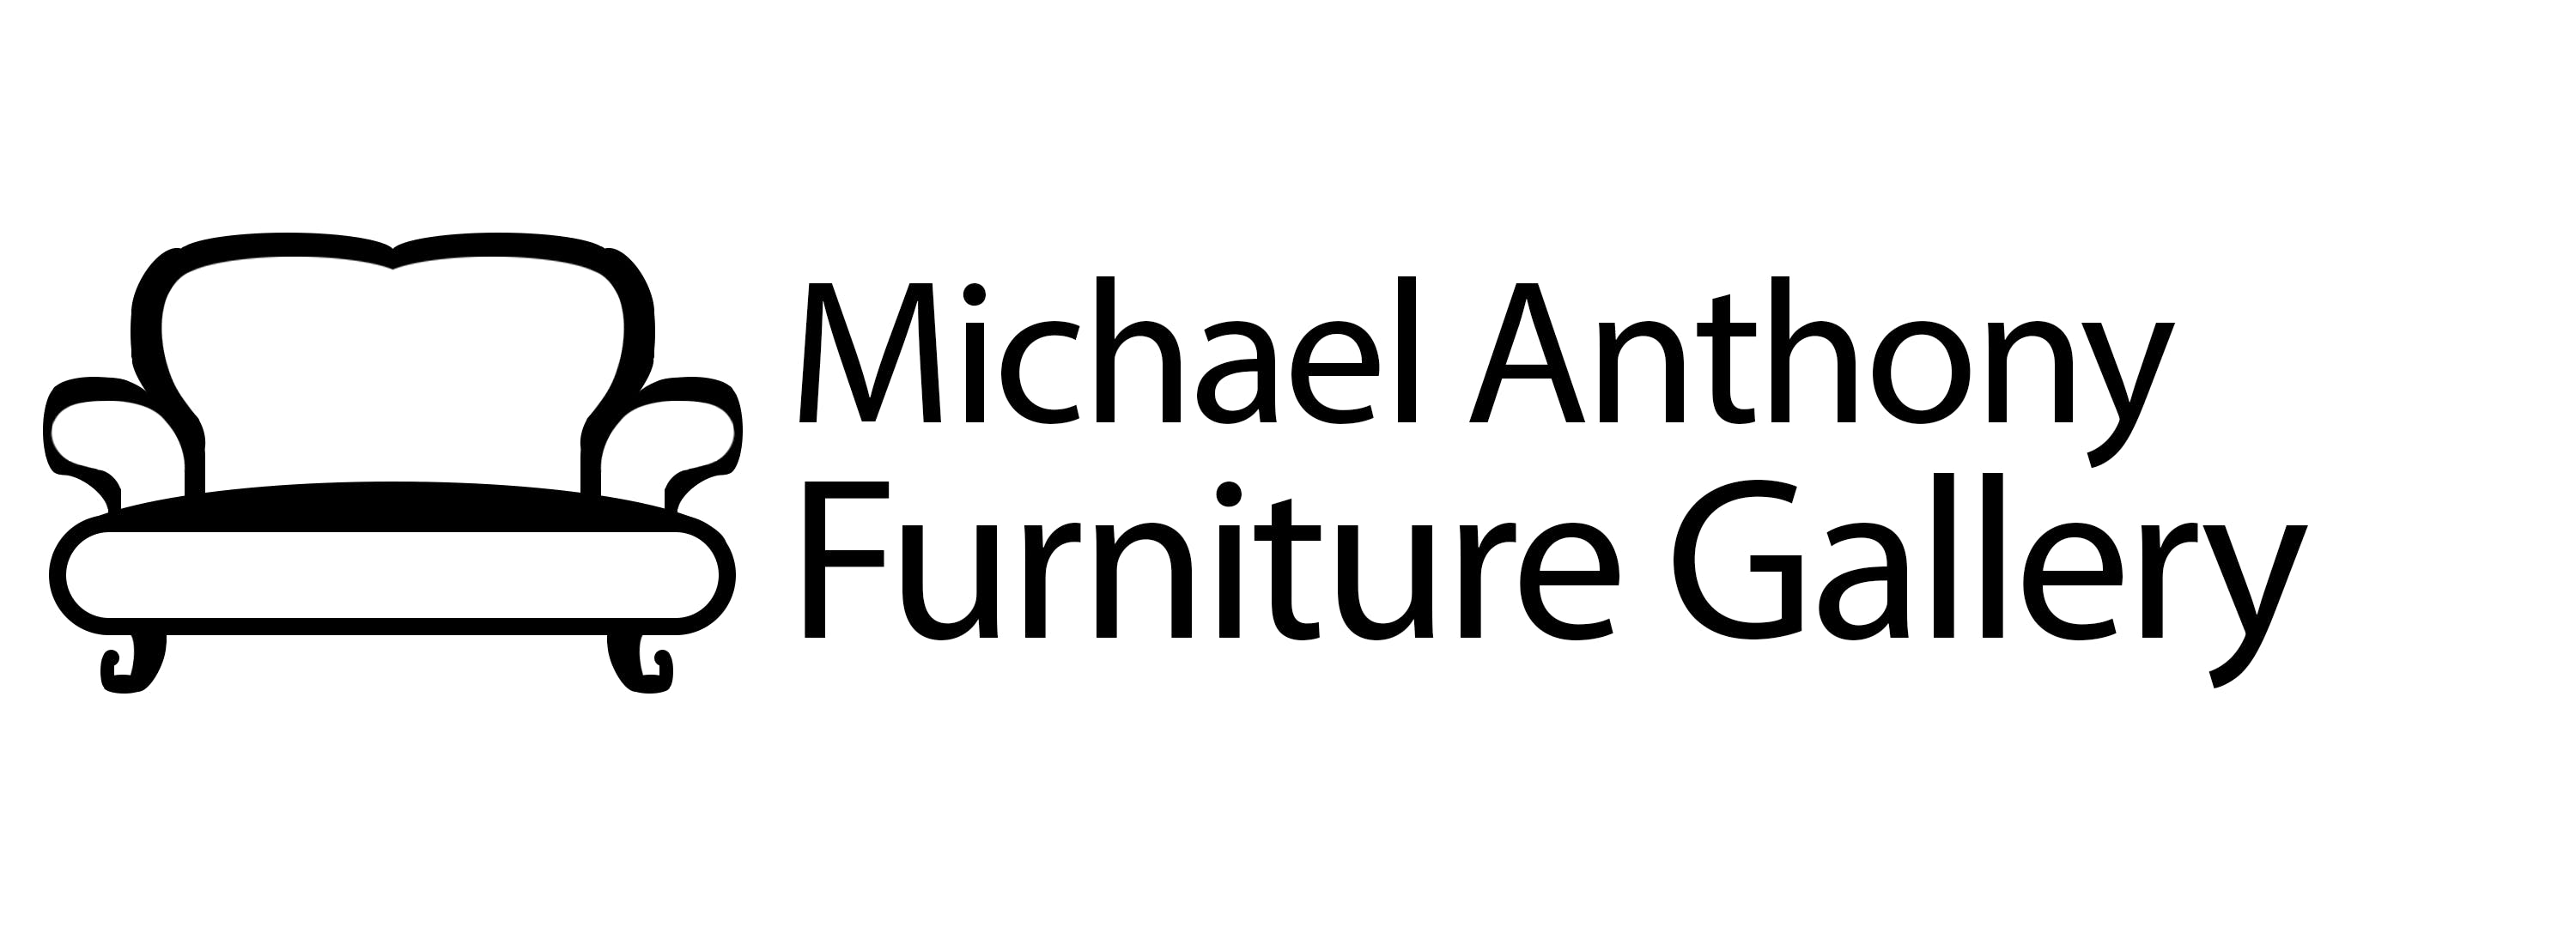 Michael Anthony and Suffern Furniture Gallery